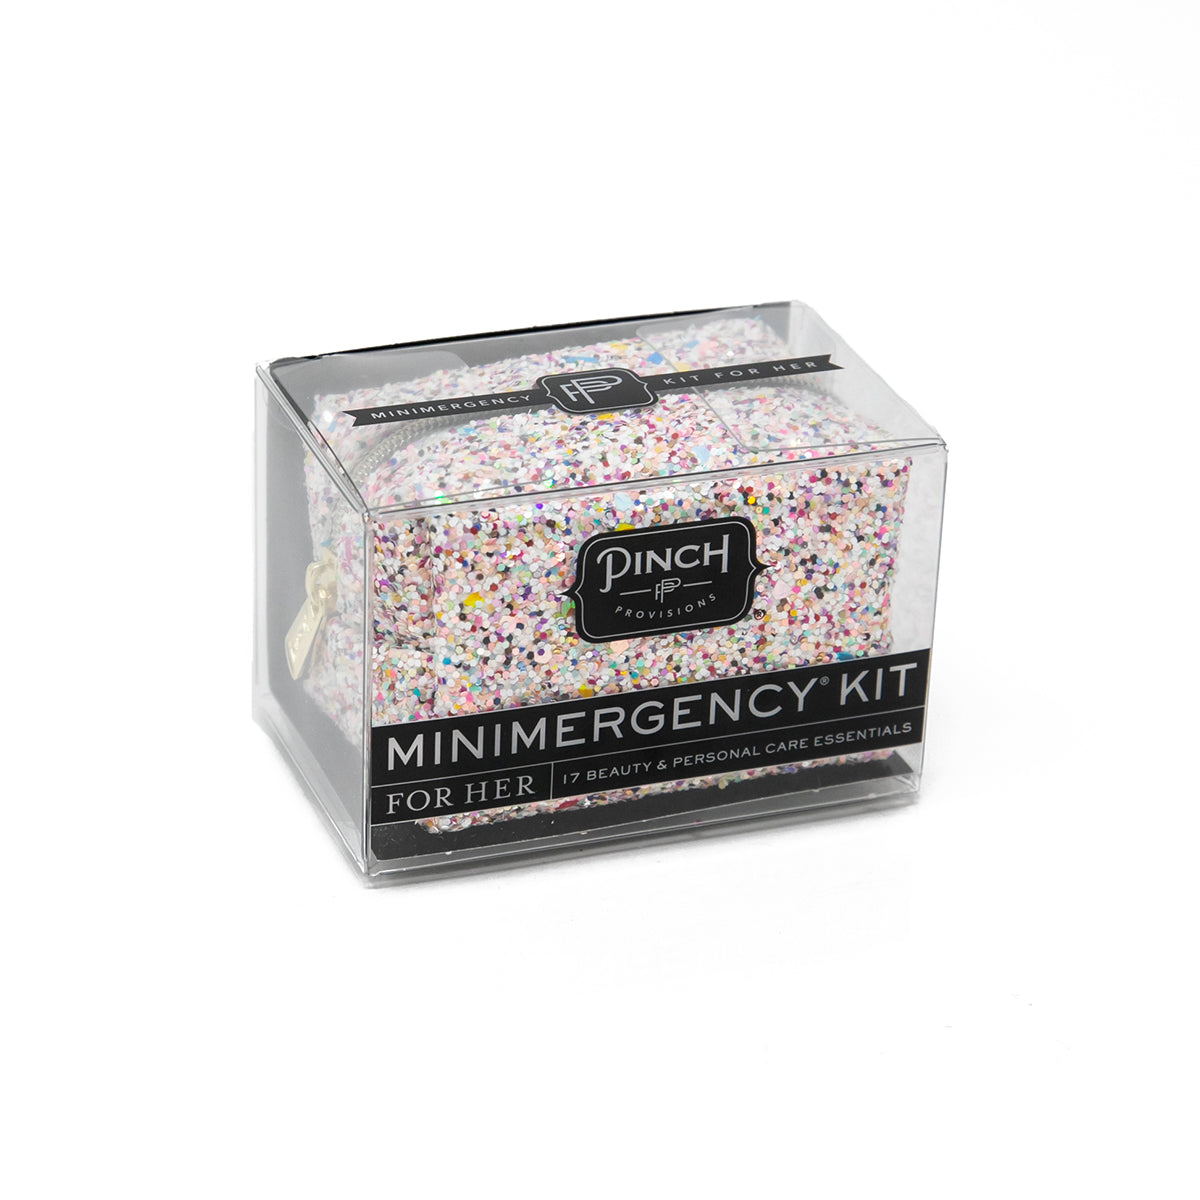 Candy Glitter Confetti Minimergency Kit by Pinch Provisions